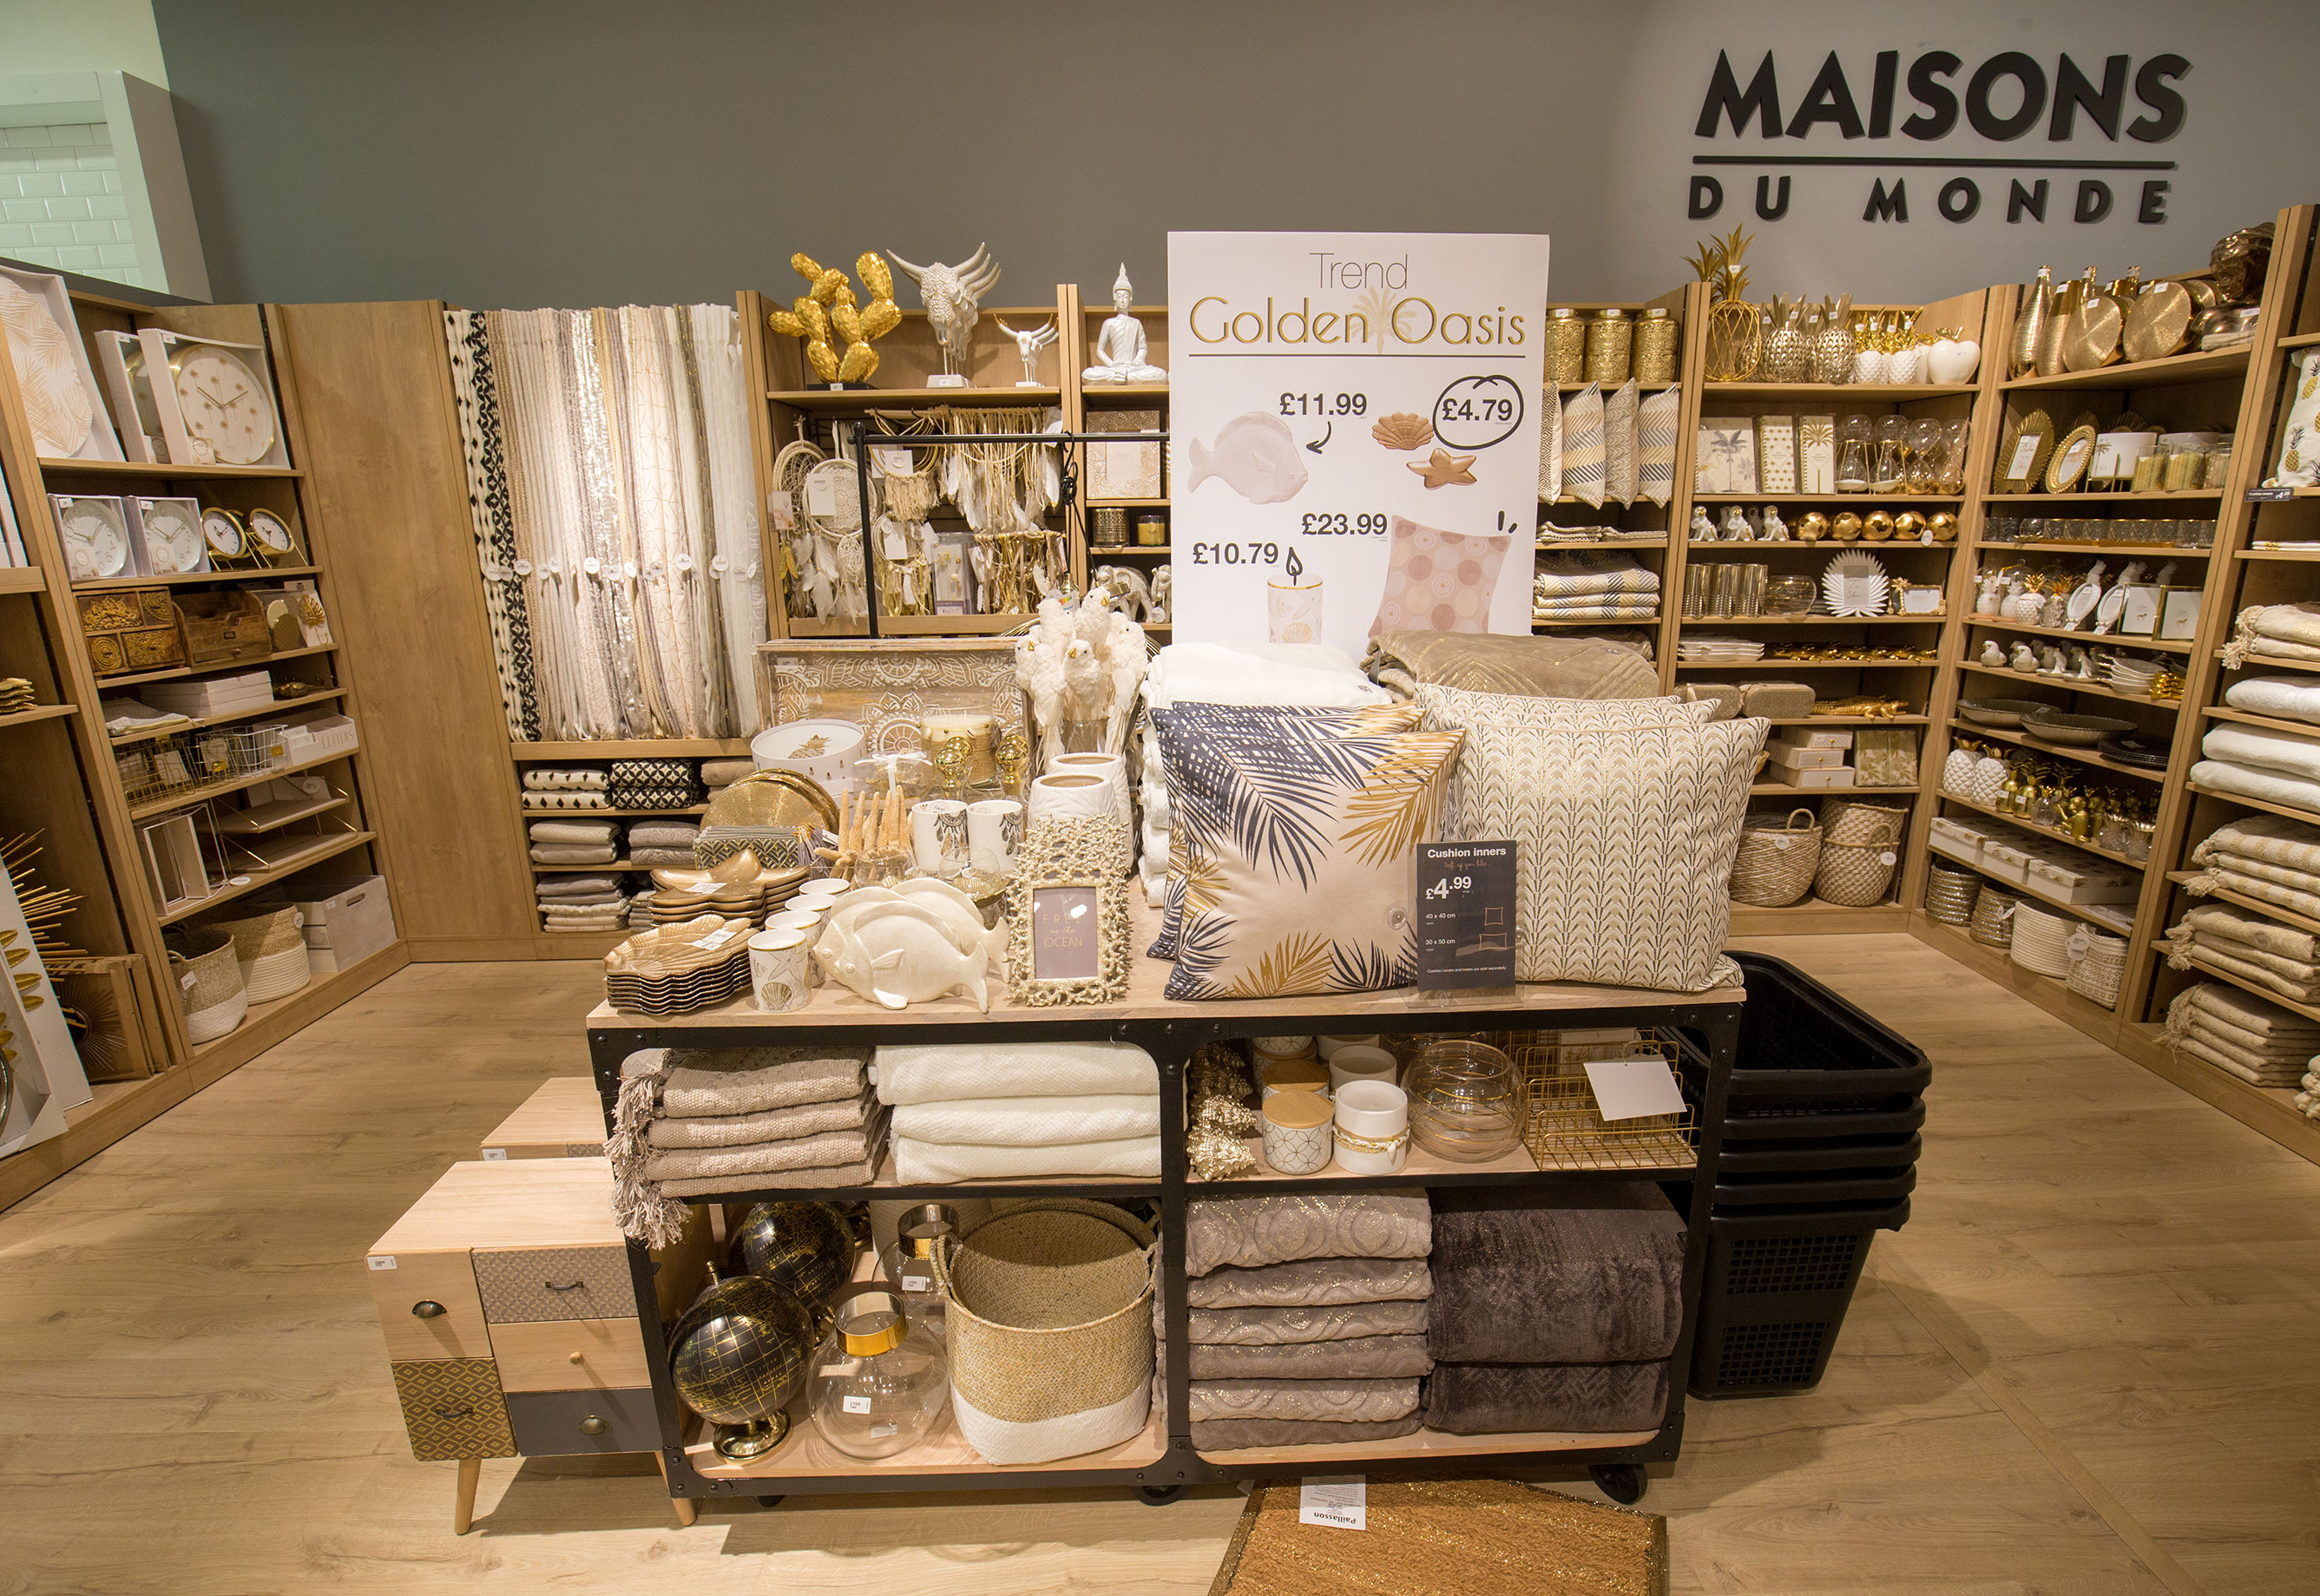 Maisons du monde opened 3 concessions in london westfield - Maison du monde uk ...